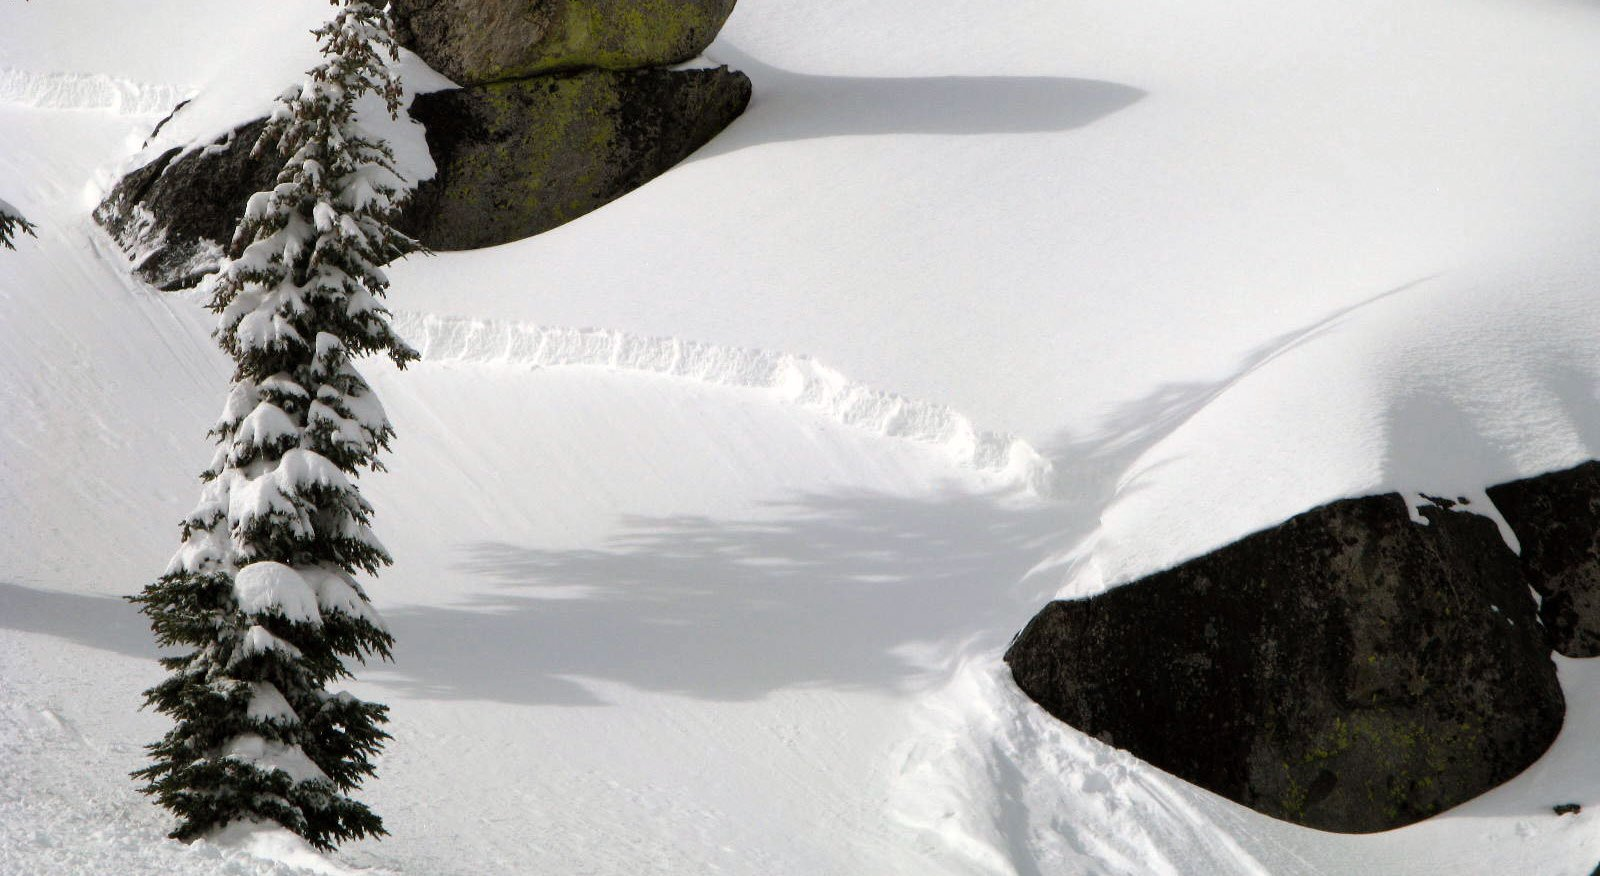 Early Season signs of Avalanche Hazards